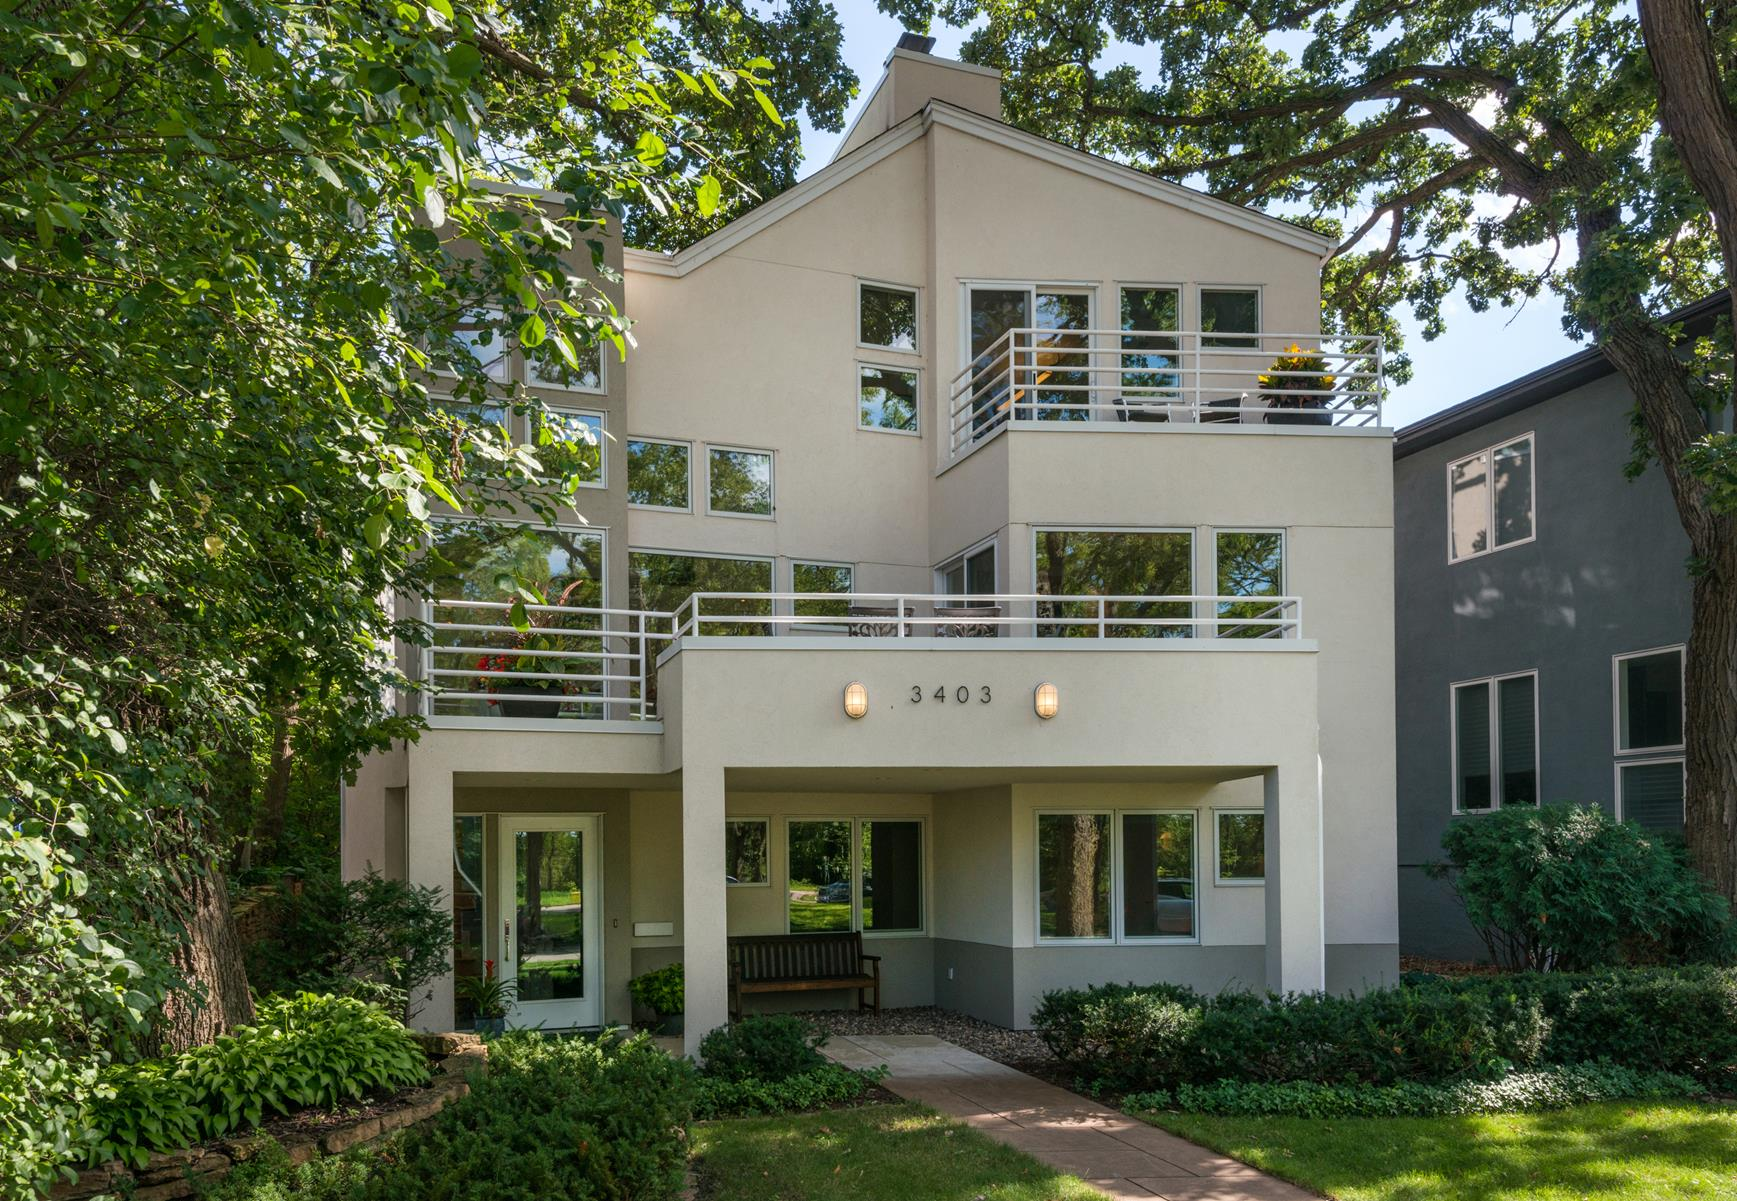 Villa per Vendita alle ore 3403 W 28th Street Minneapolis, Minnesota, 55416 Stati Uniti